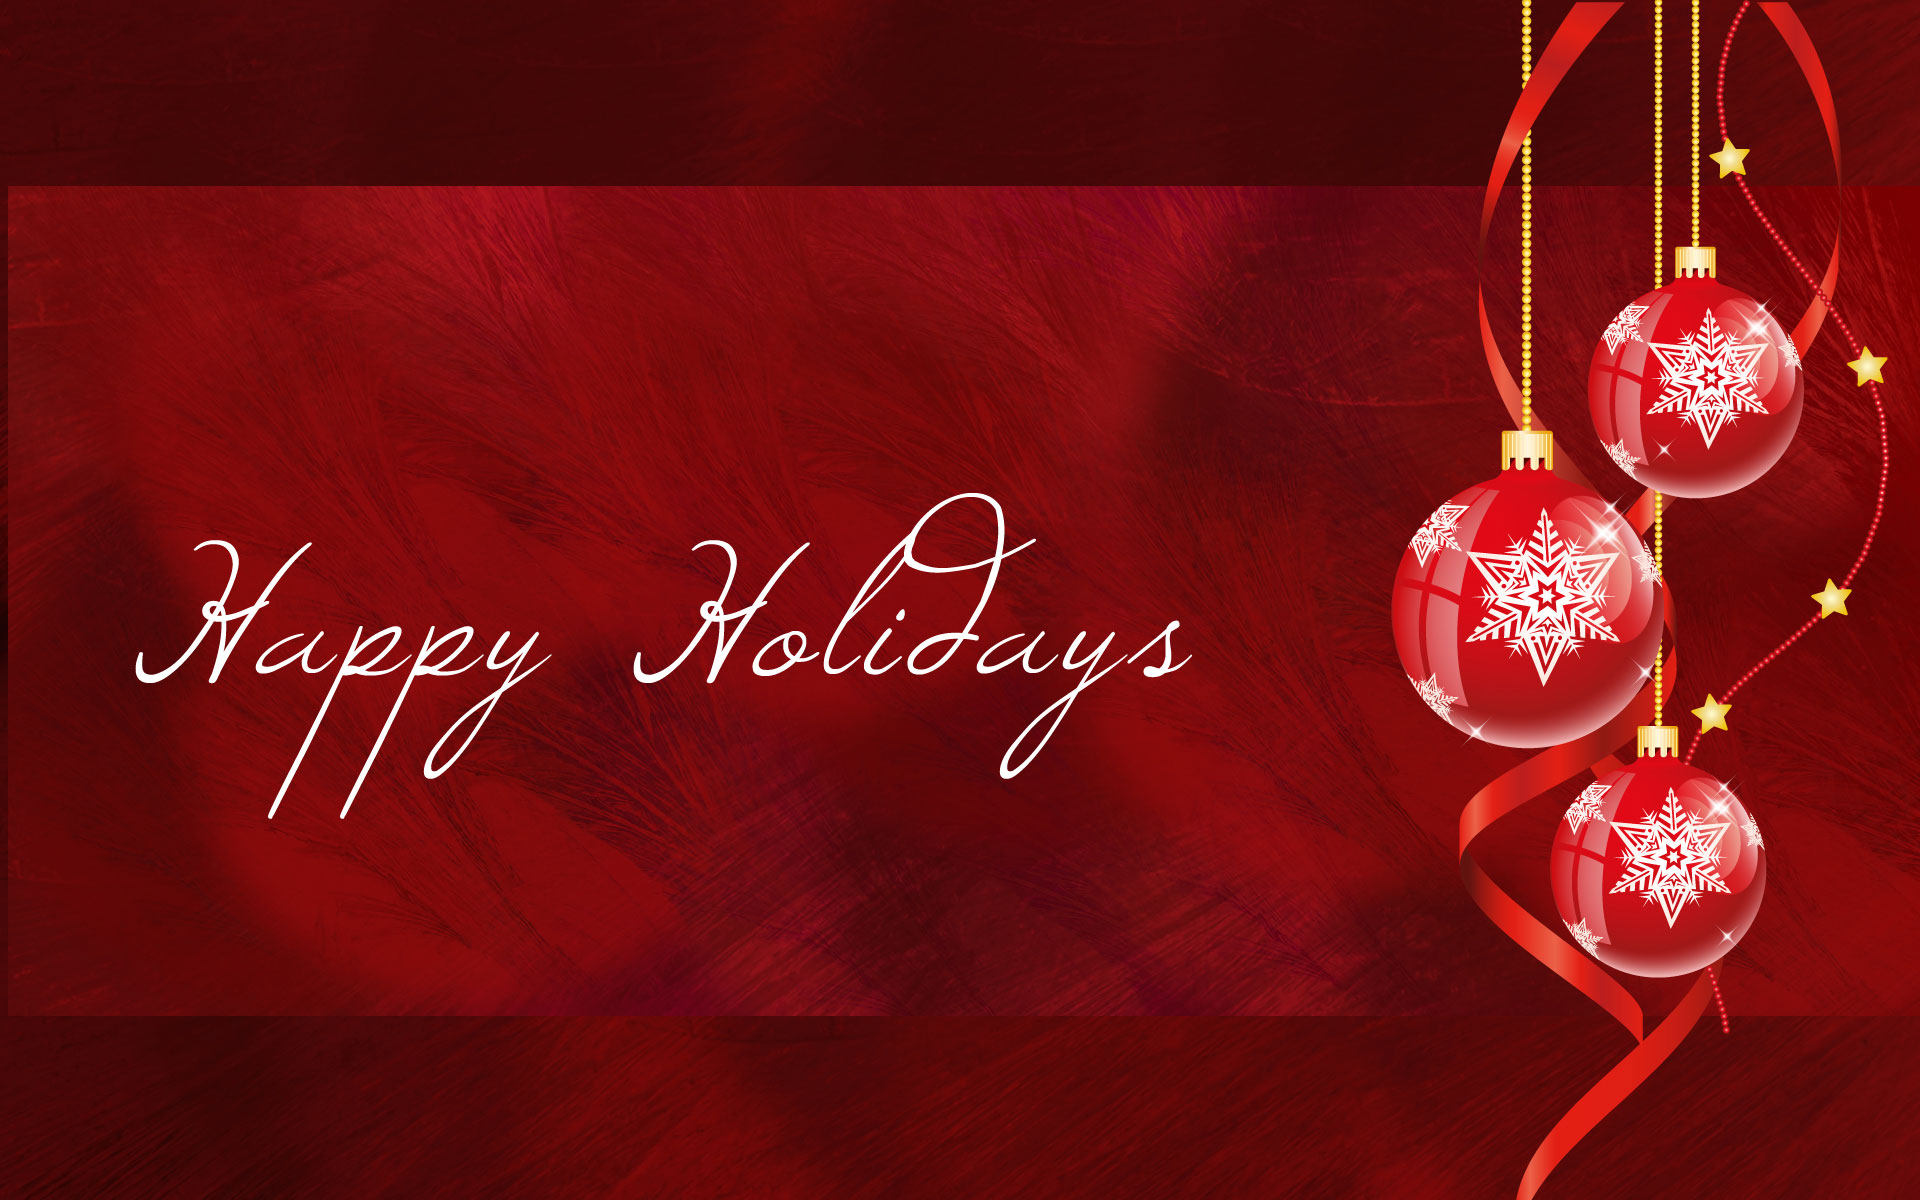 1355756428-happy-holidays-wallpapers